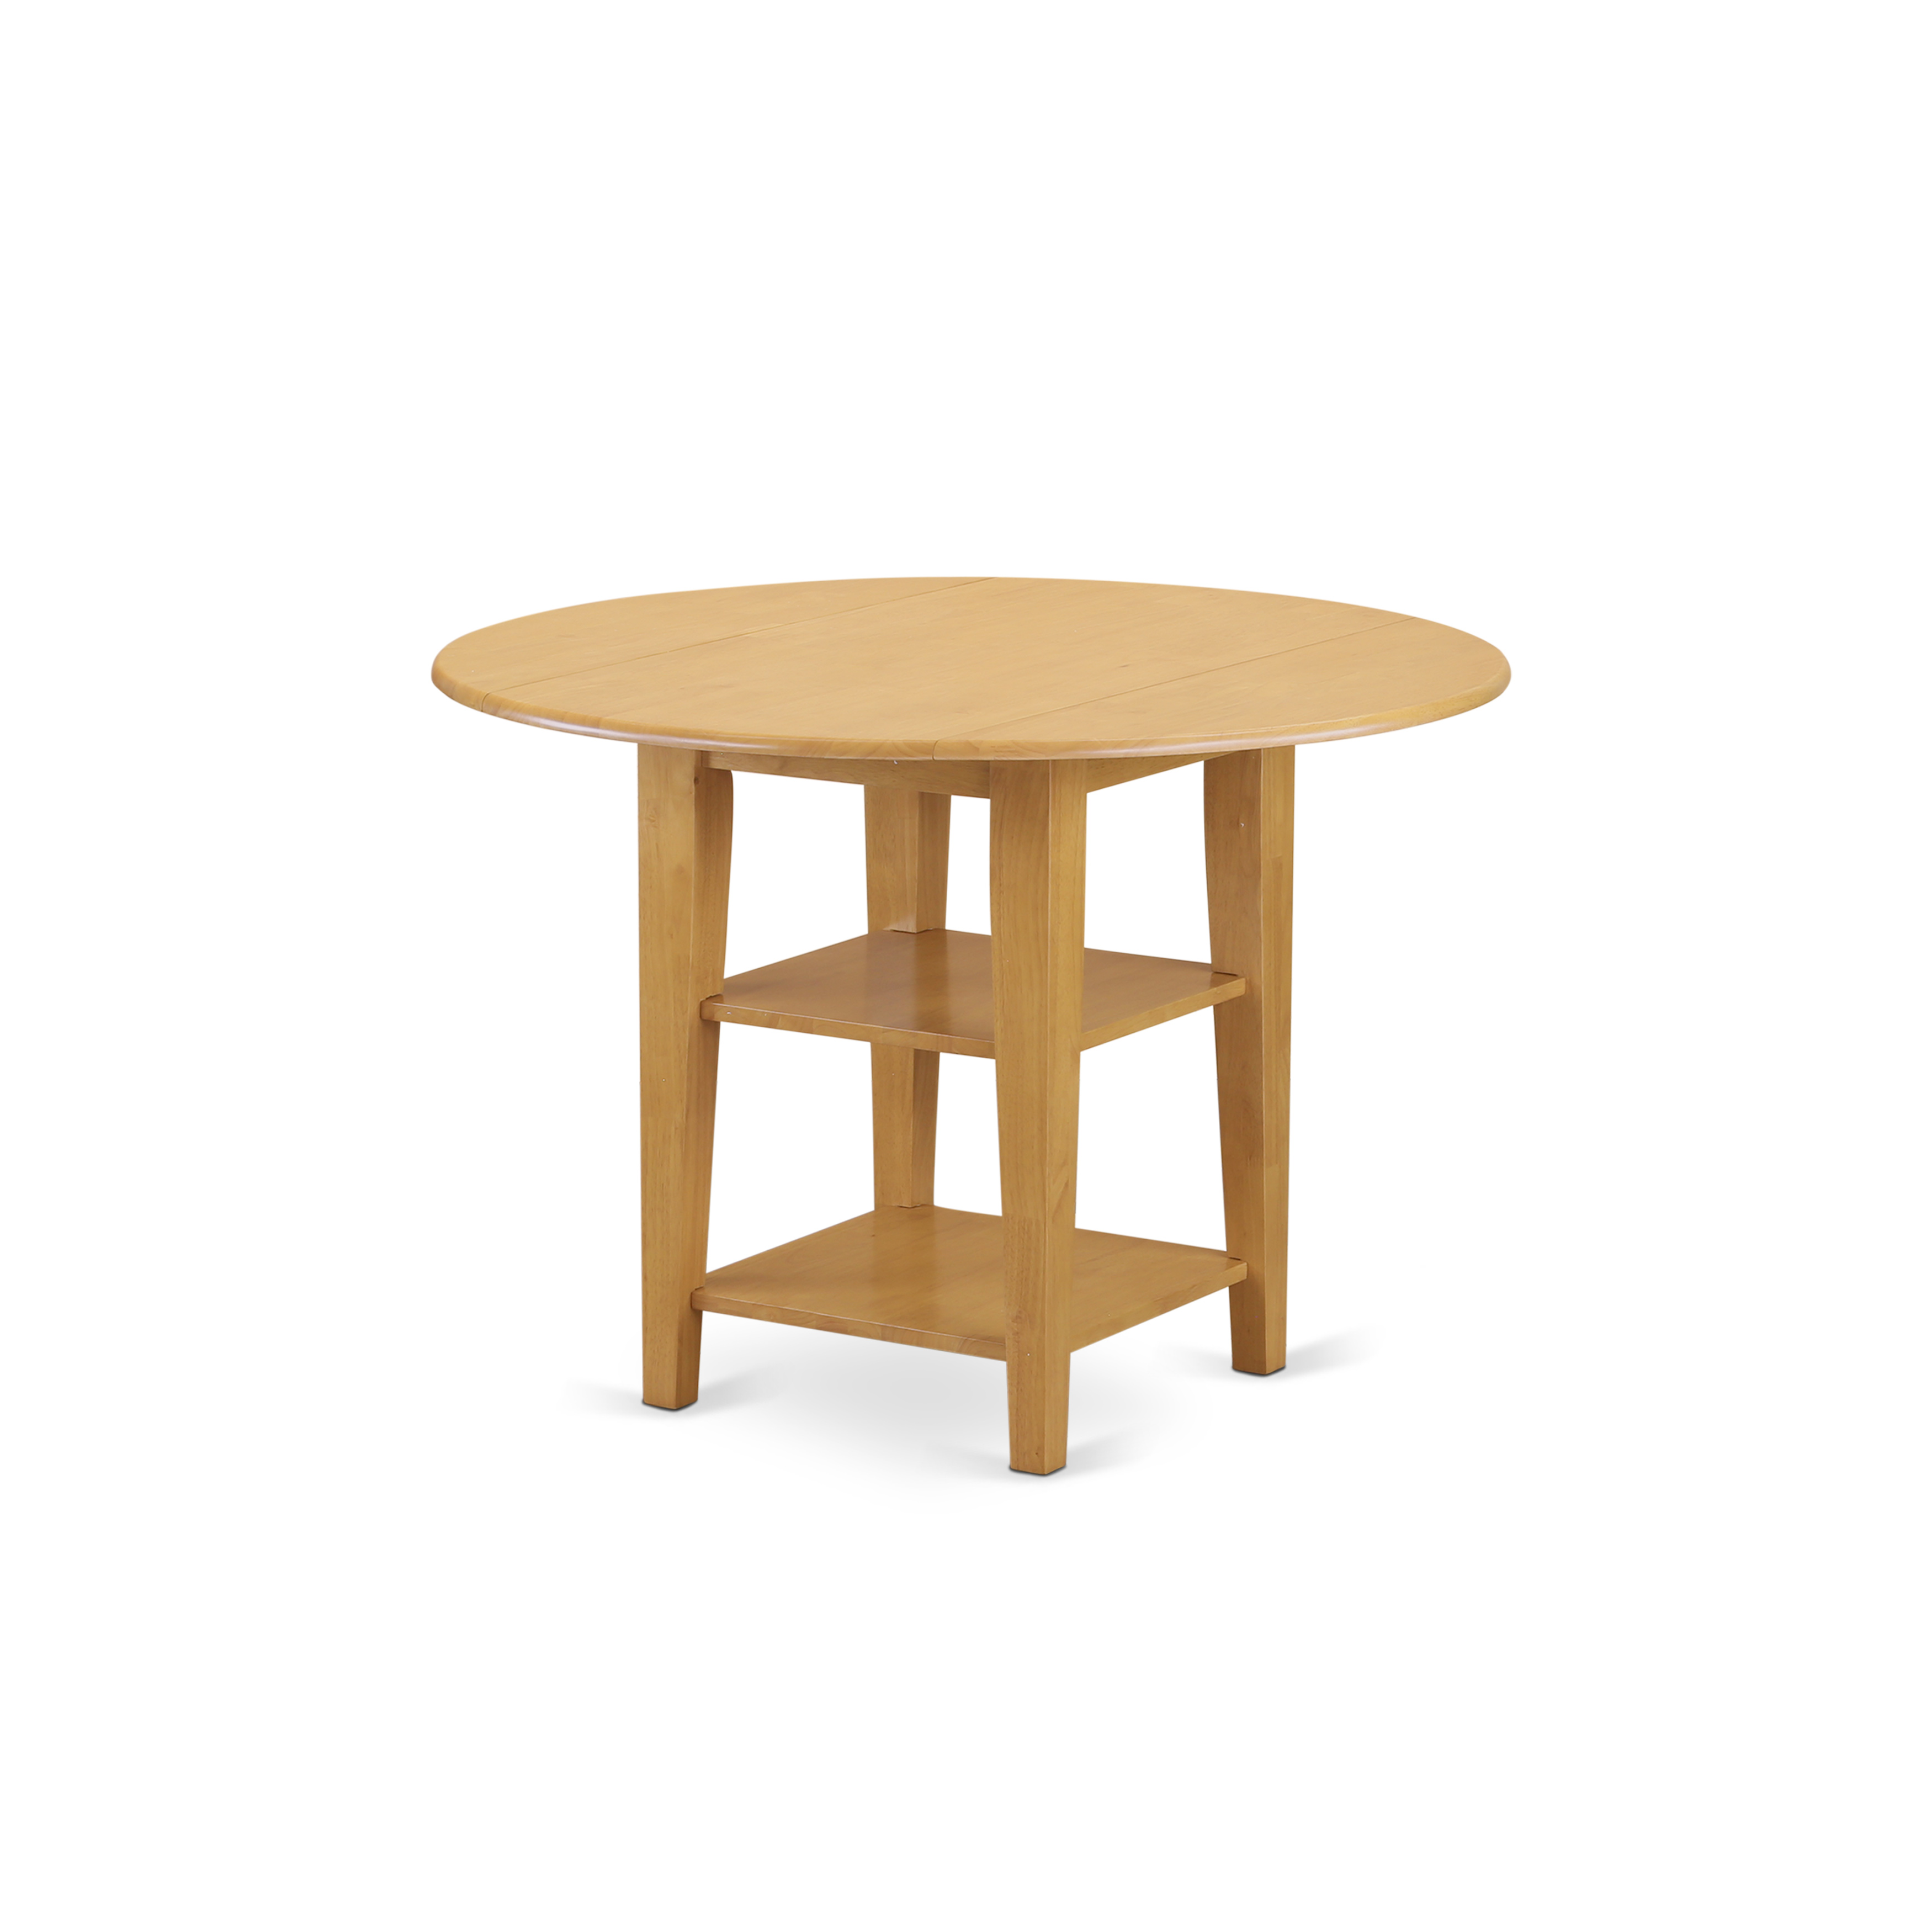 East West Furniture Sudbury round Kitchen Table with two shelves in Oak  finish, Oak